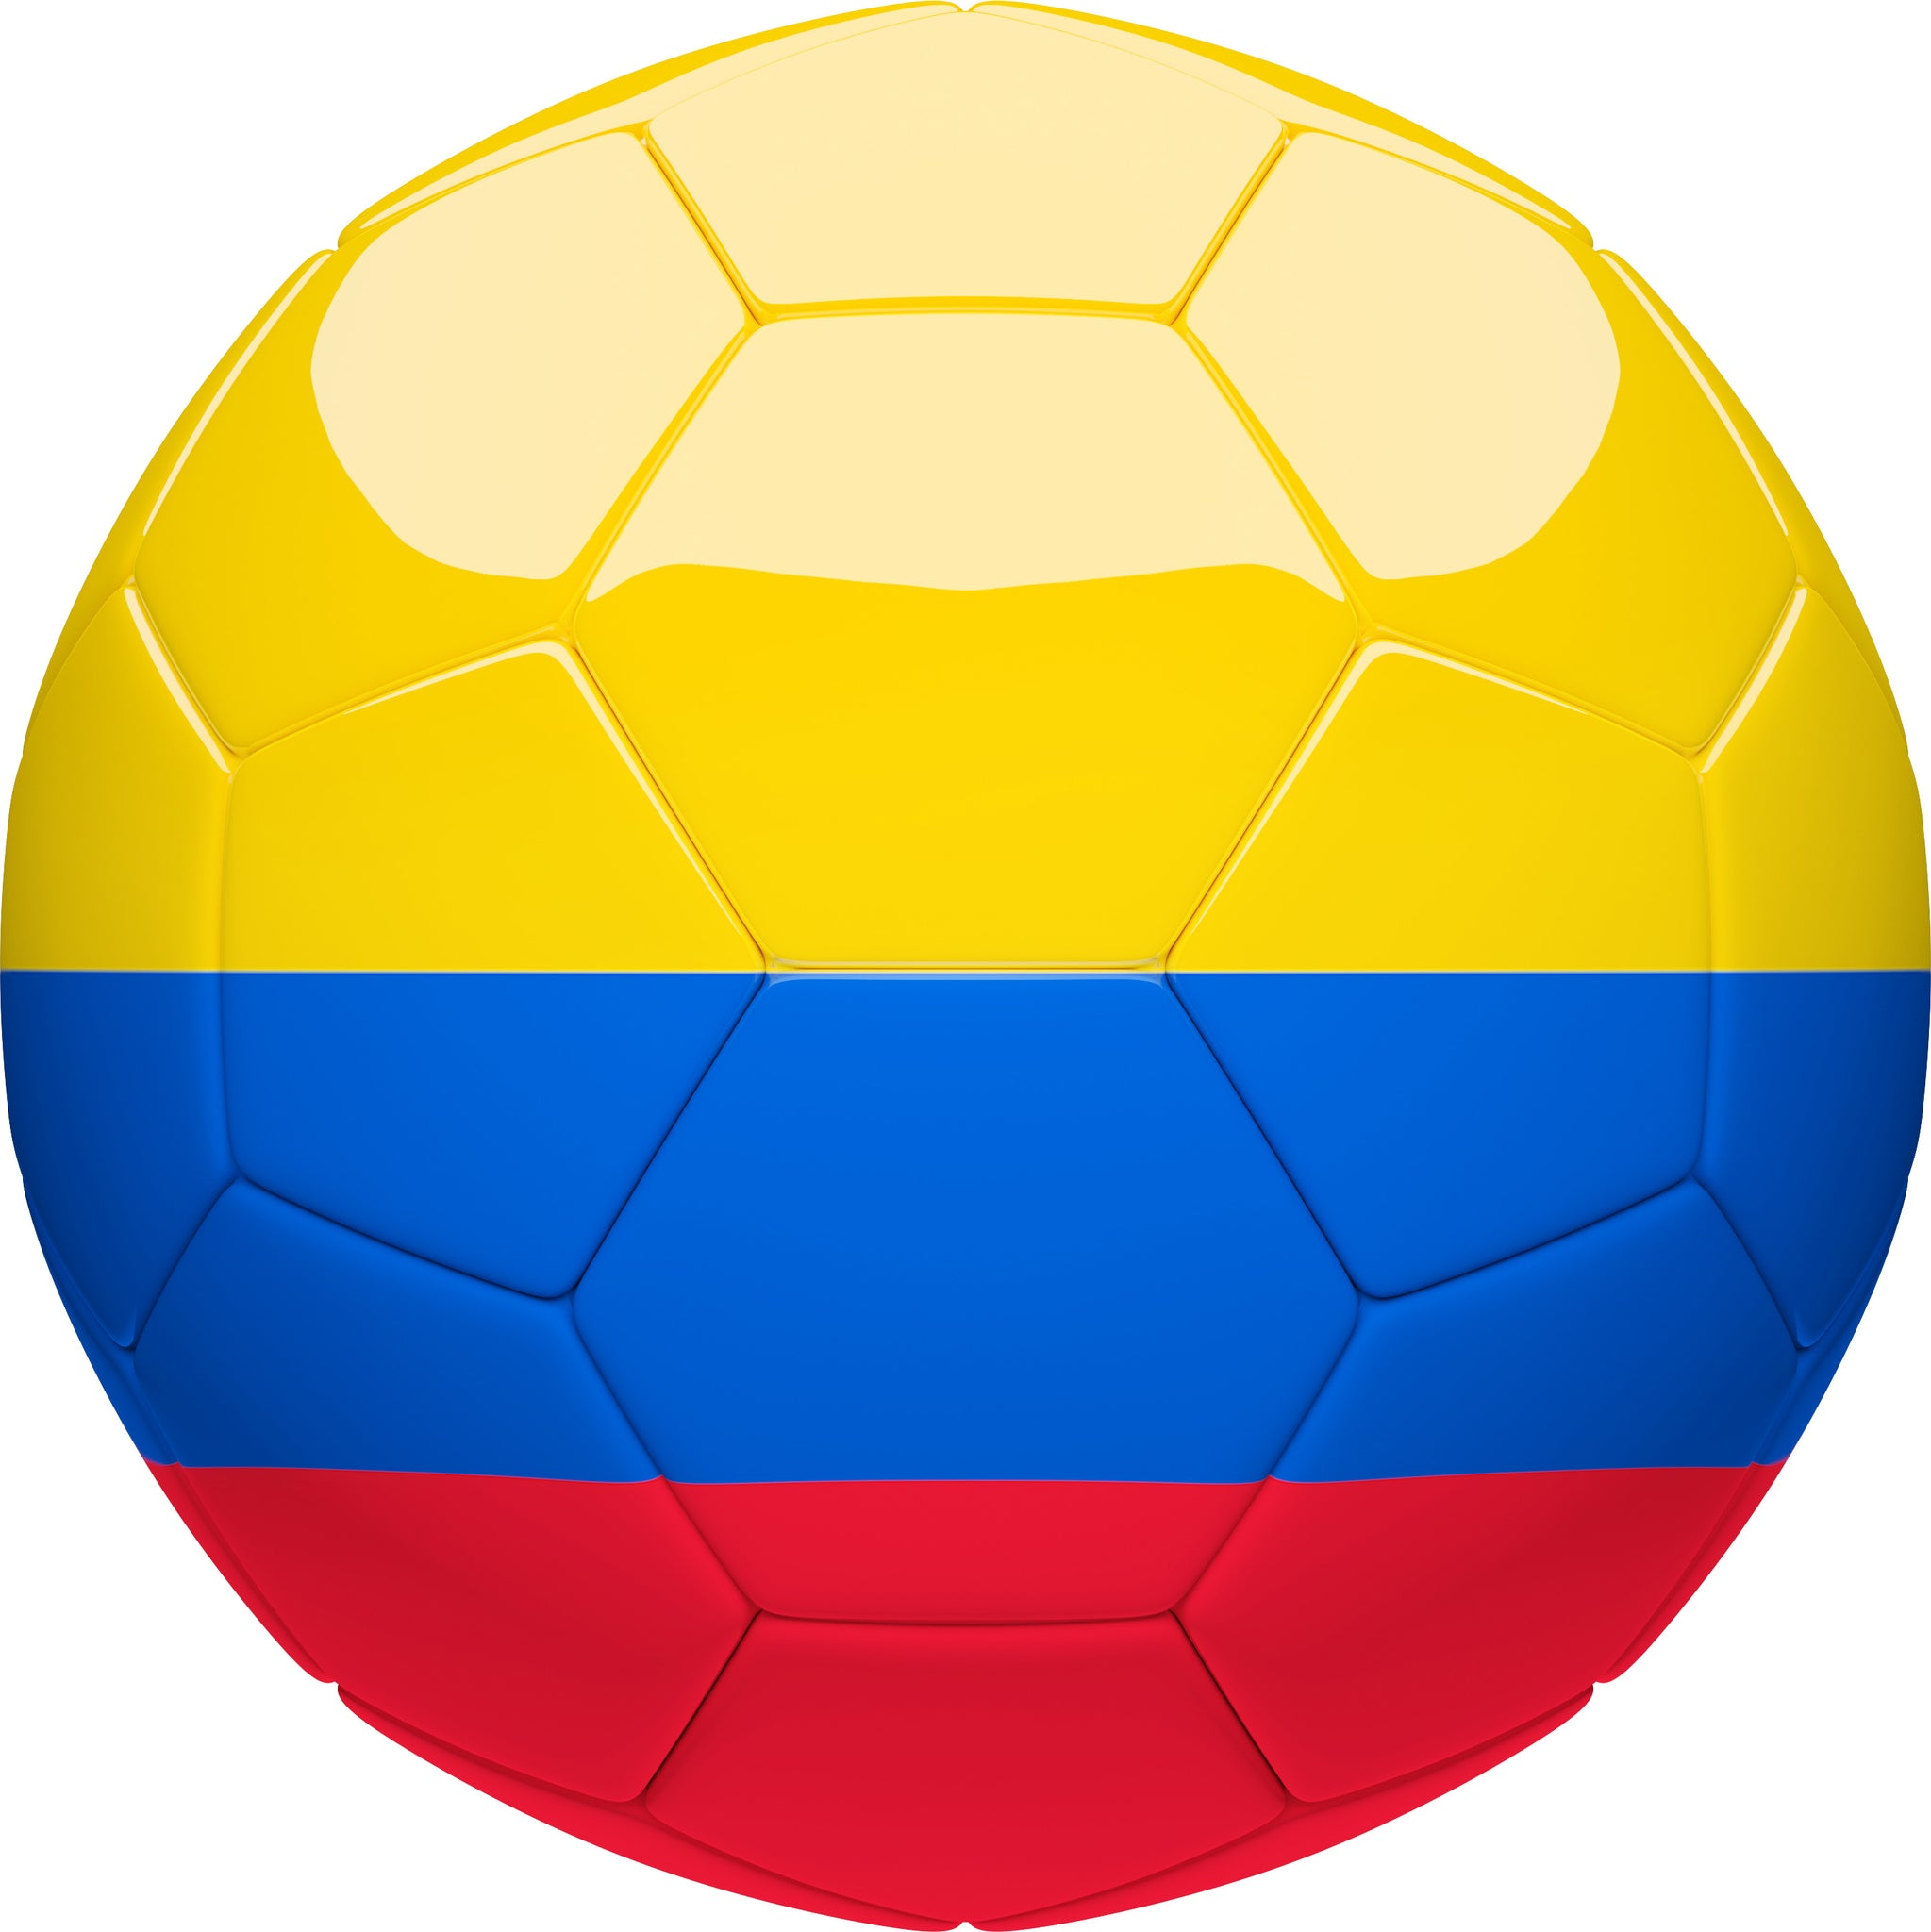 Simple Soccer Futbol Sport Ball with Team Country Flag Pattern - Colombia Vinyl Decal Sticker